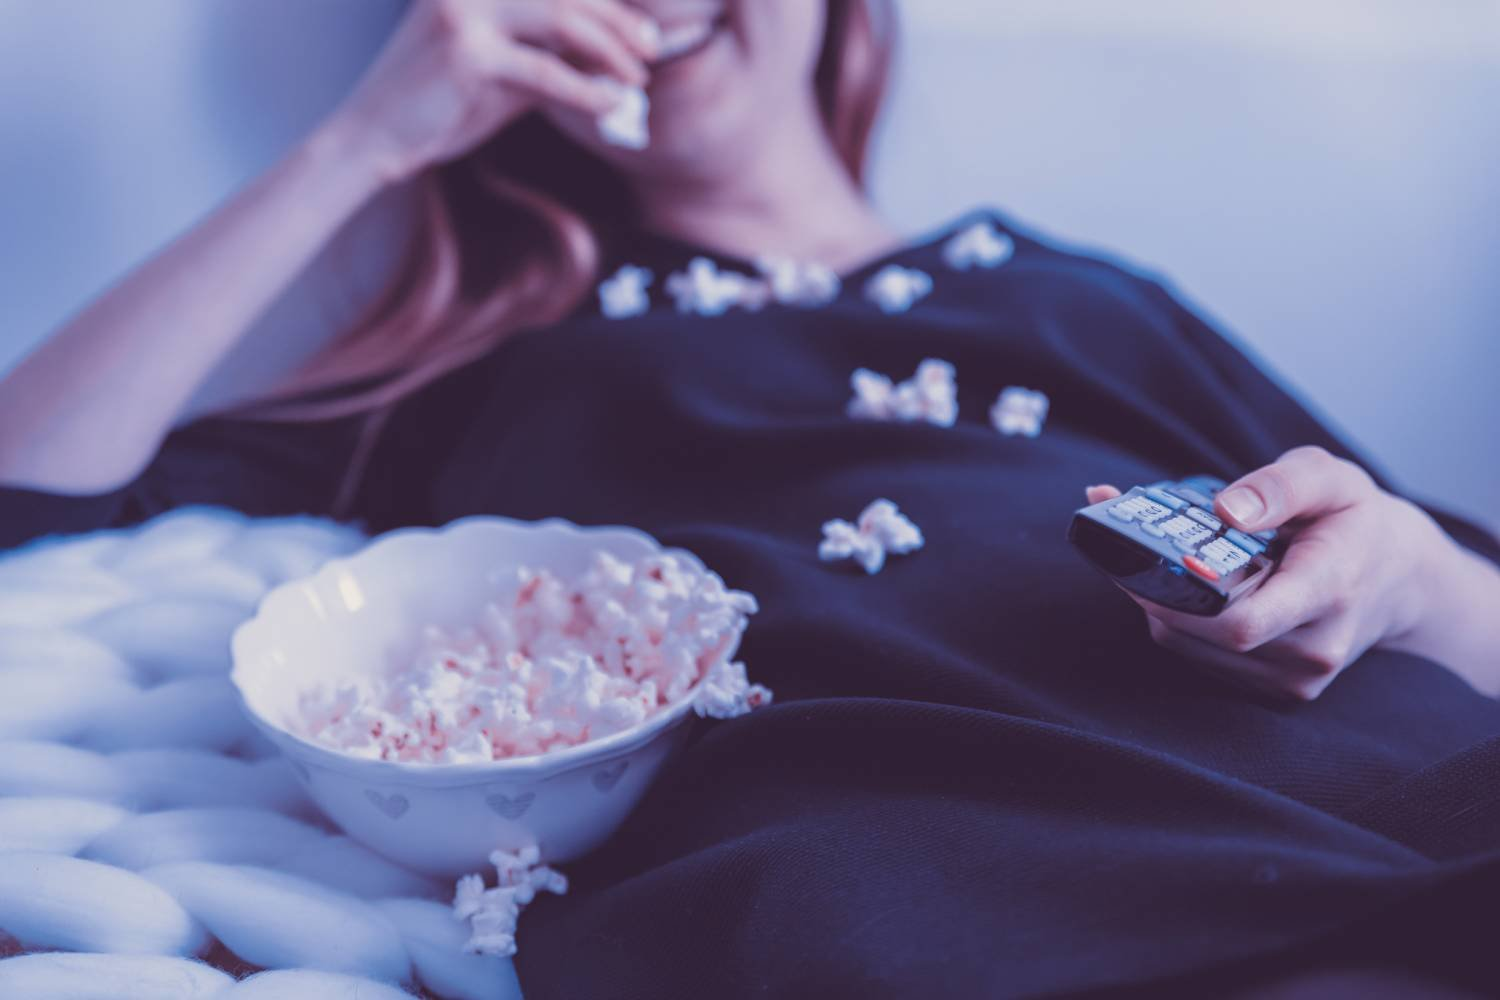 The best ways to legally stream movies and TV for free